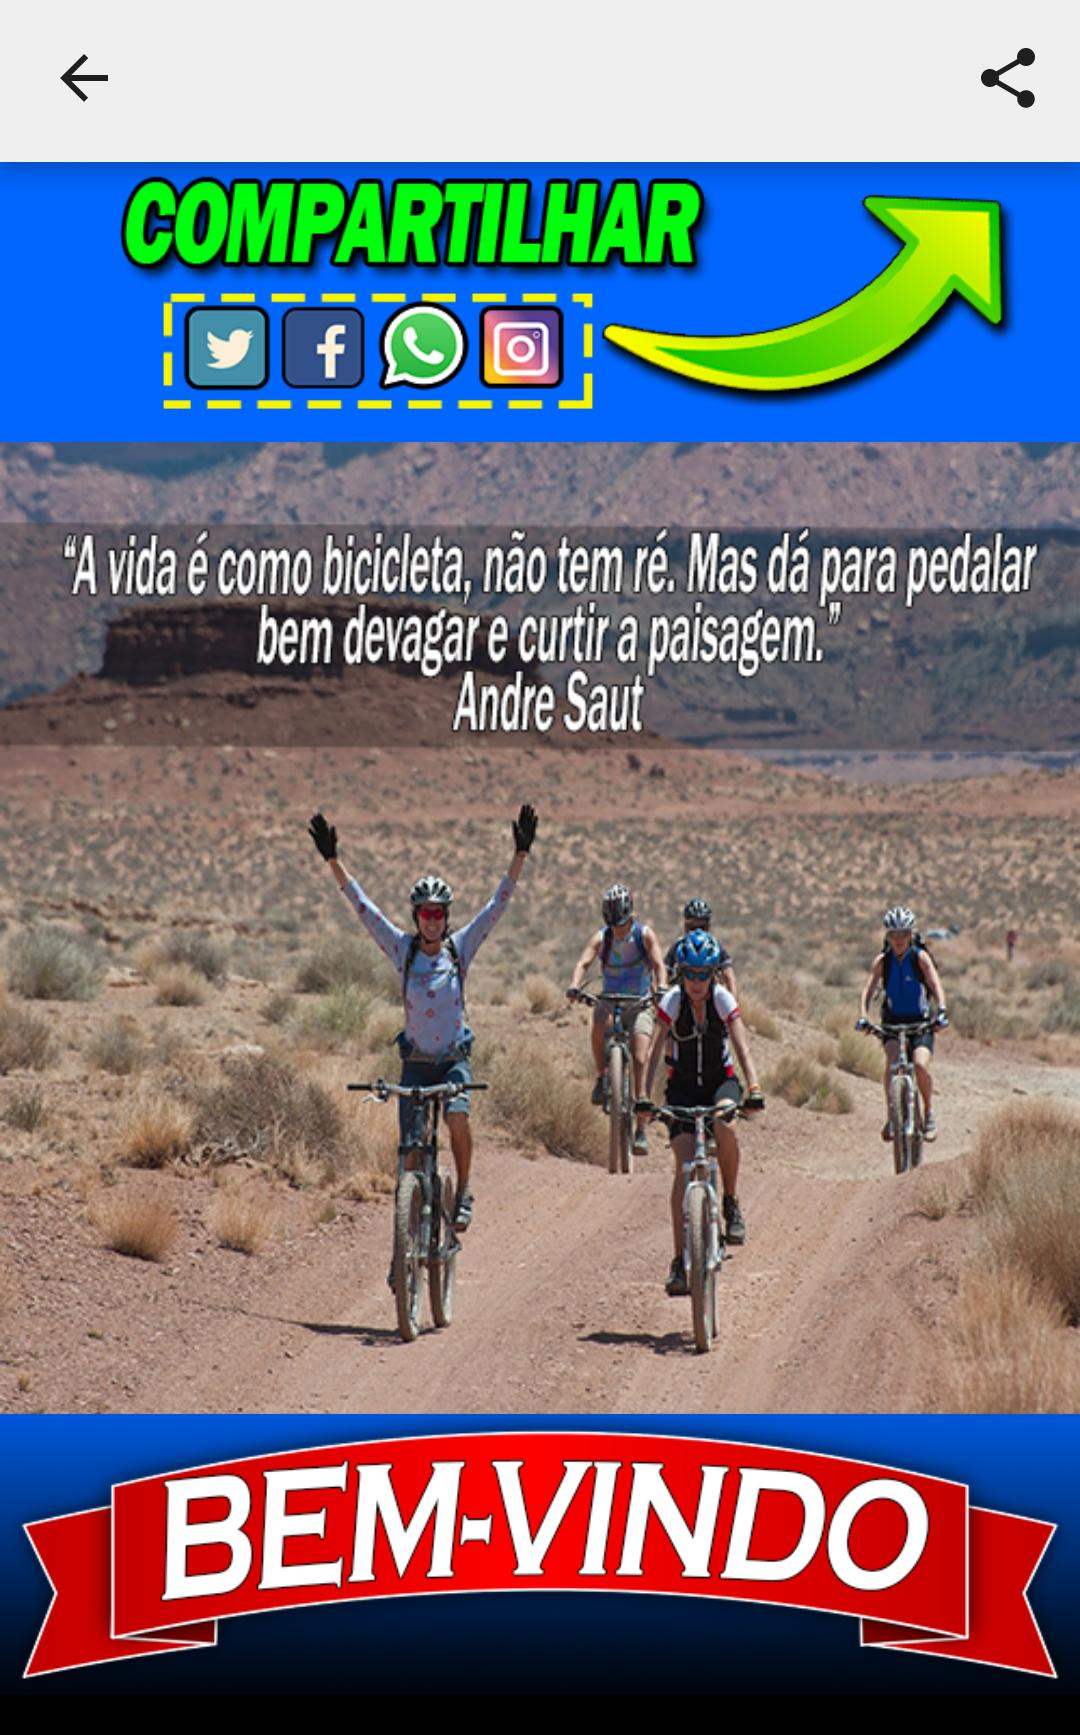 Frases De Ciclismo Em Português For Android Apk Download